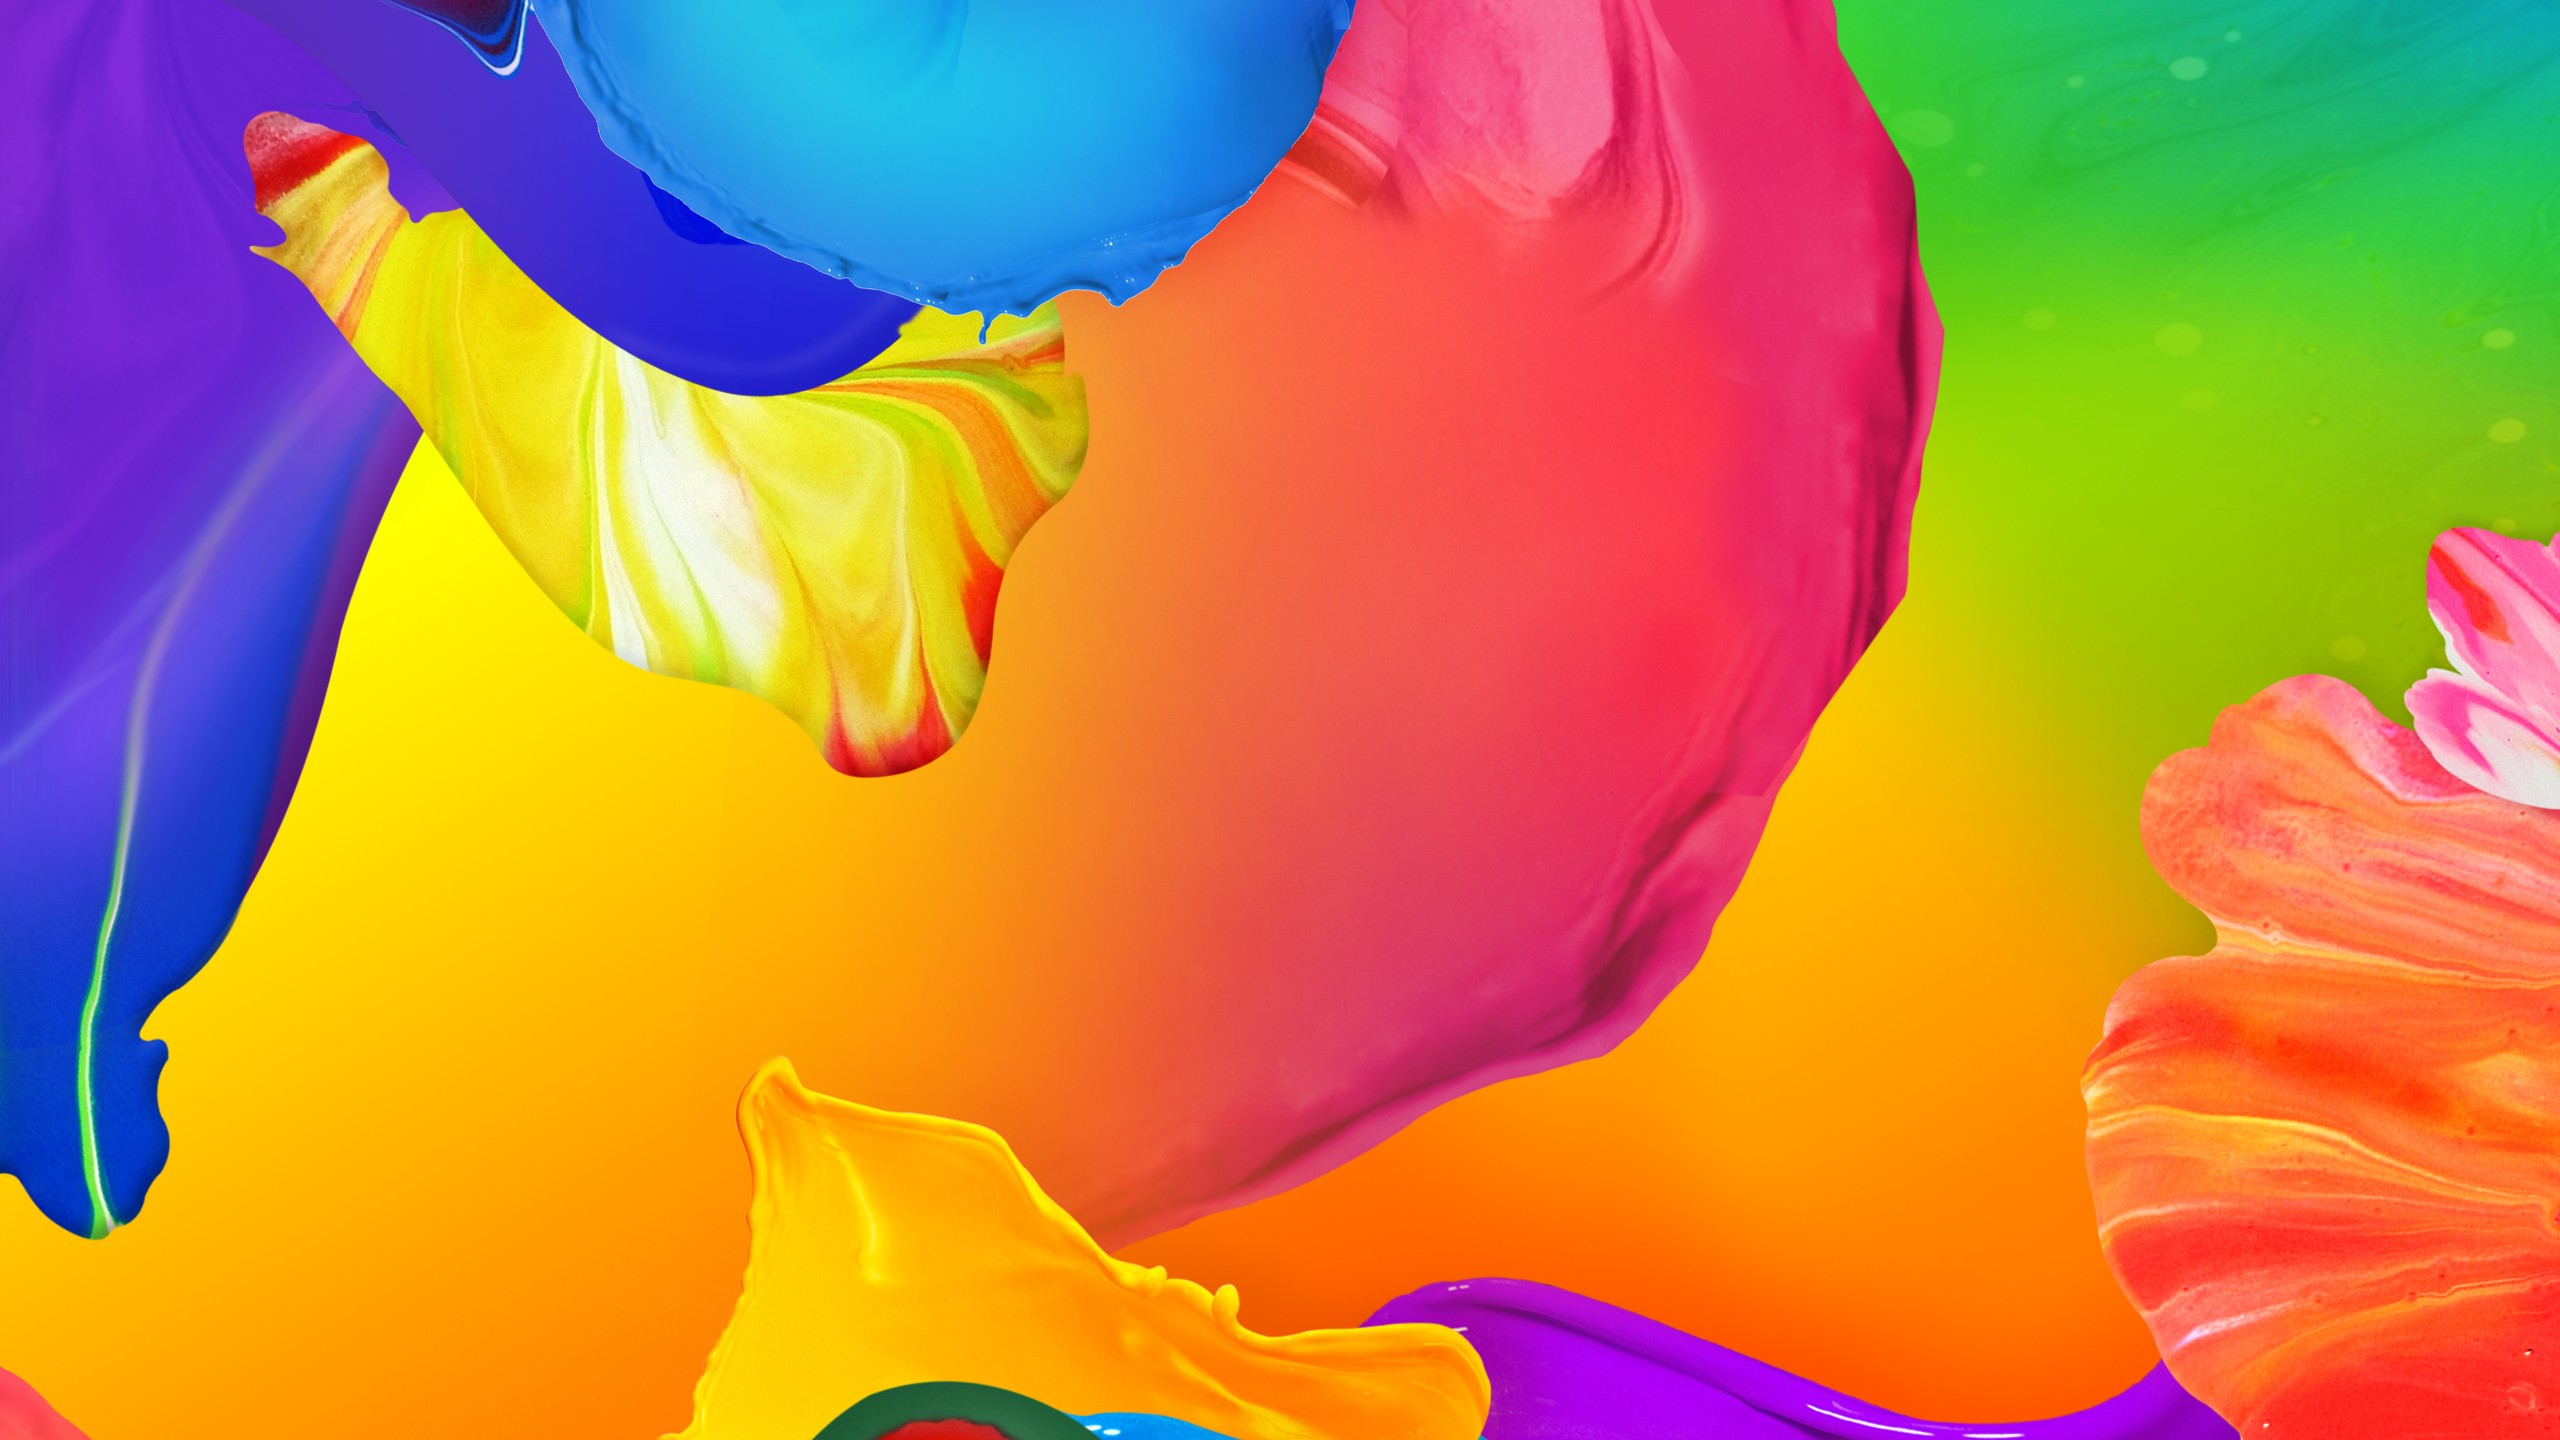 Wallpaper Polygon 4k HD Android Paint